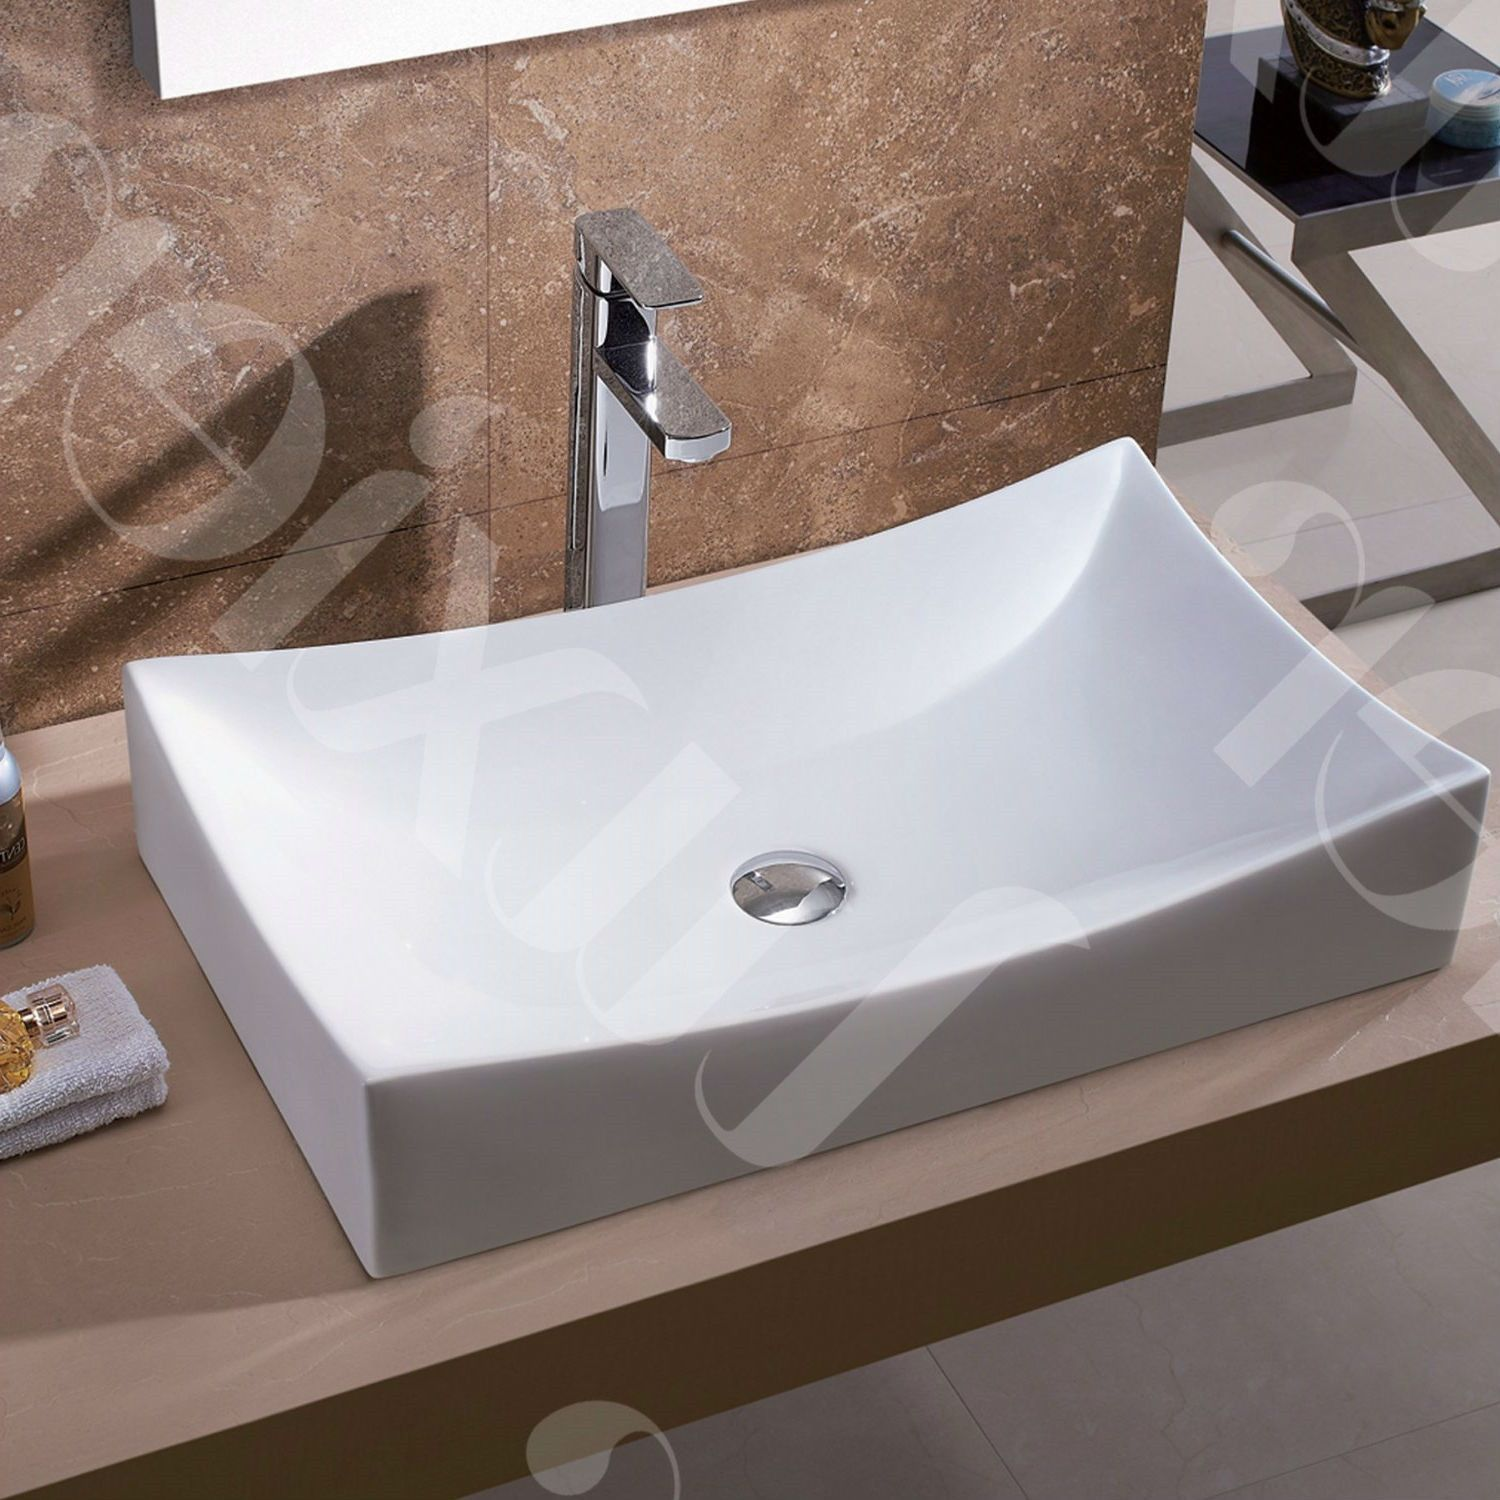 Modern European Style Oversized Porcelain Ceramic Vessel Bathroom